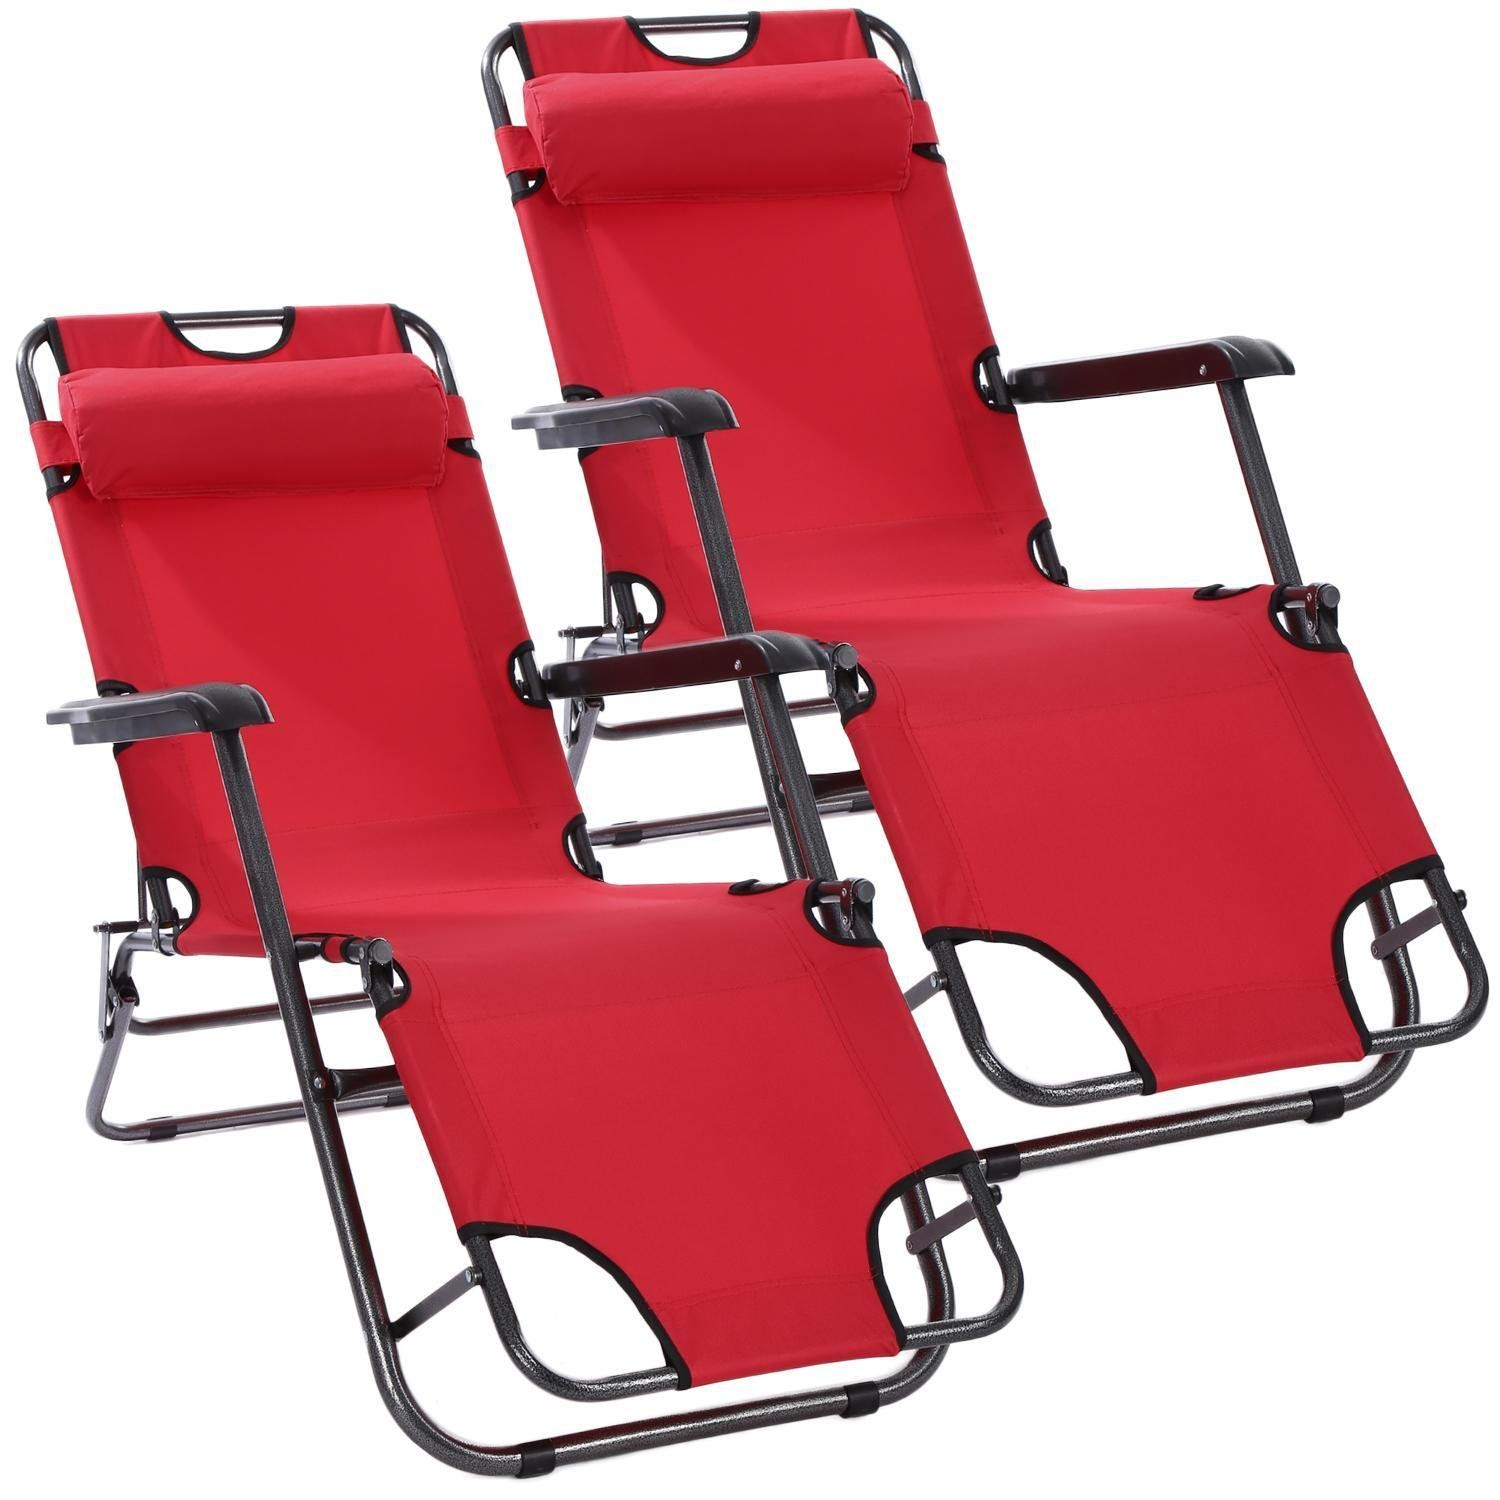 Pesters portable folding lounge chair chaise patio outdoor pool